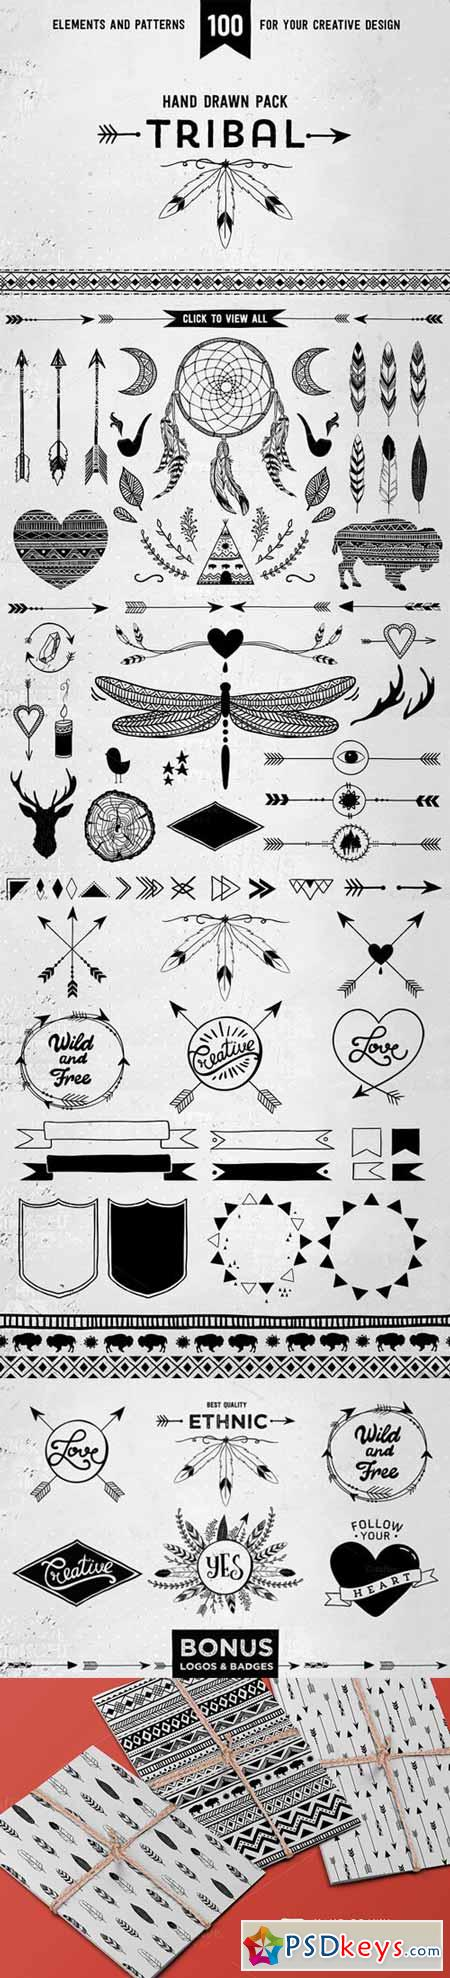 Hand drawn tribal design vector pack 137661